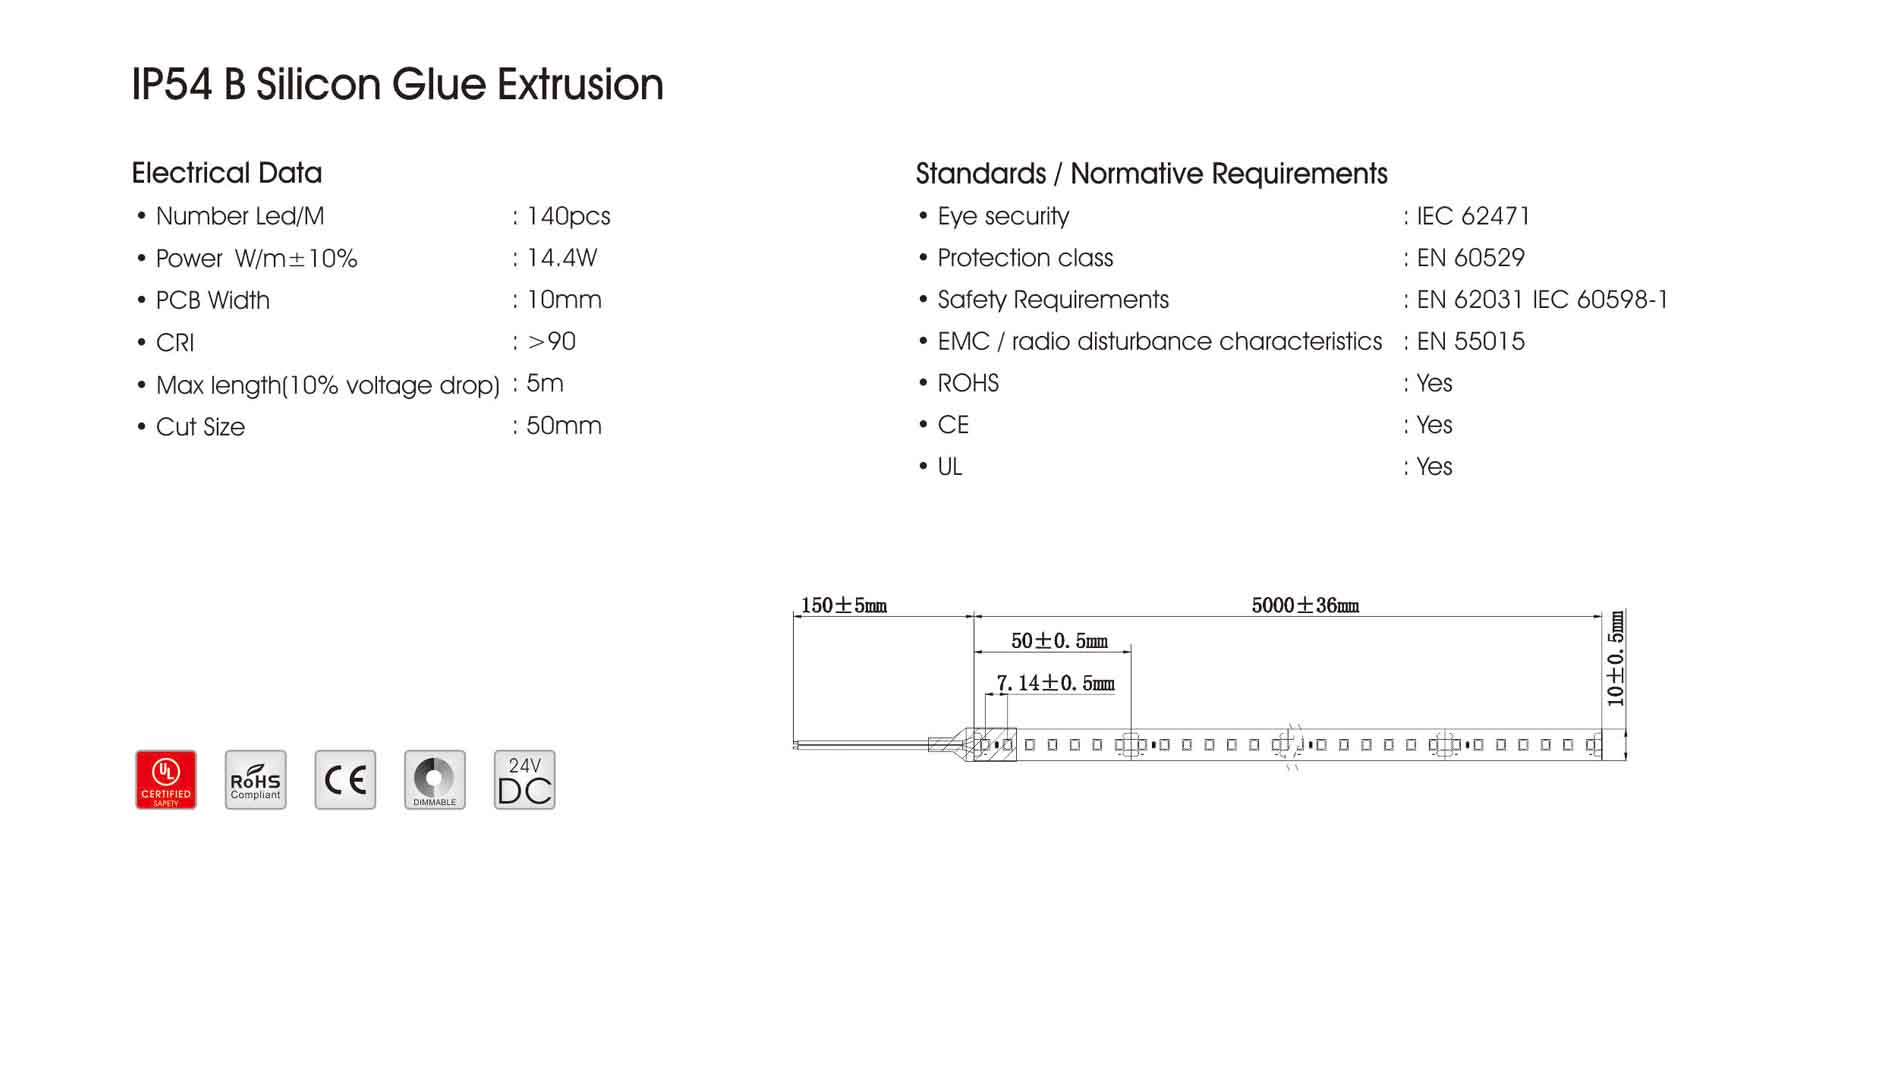 ip54 b silicon glue extrusion